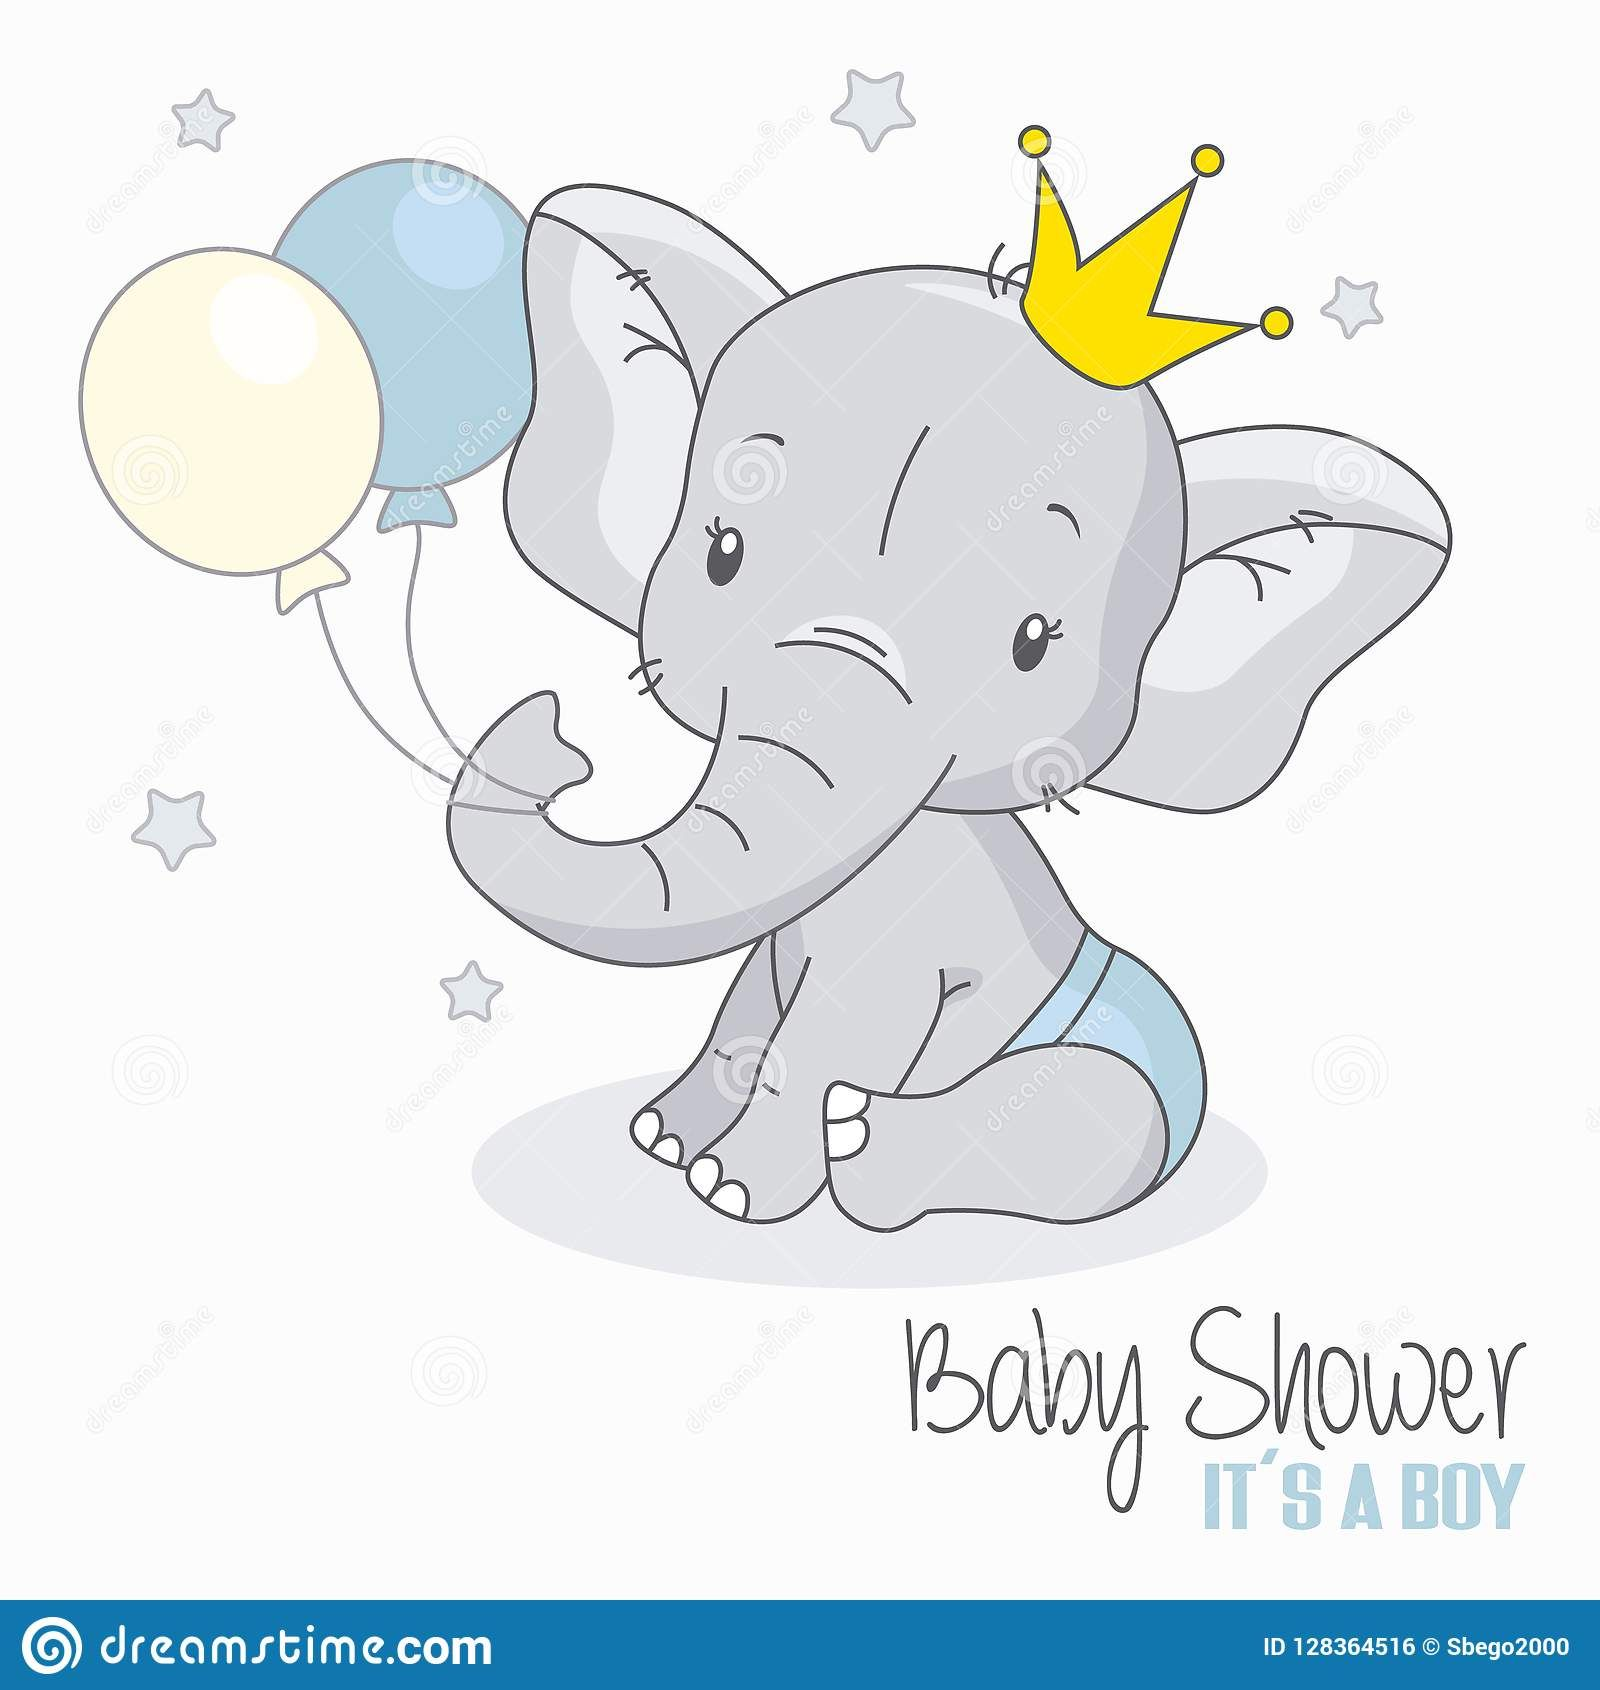 Illustration About Baby Shower Boy Cute Elephant With Balloons Illustration Of Vector Celebrati Baby Elephant Drawing Elephant Baby Shower Boy Cute Elephant